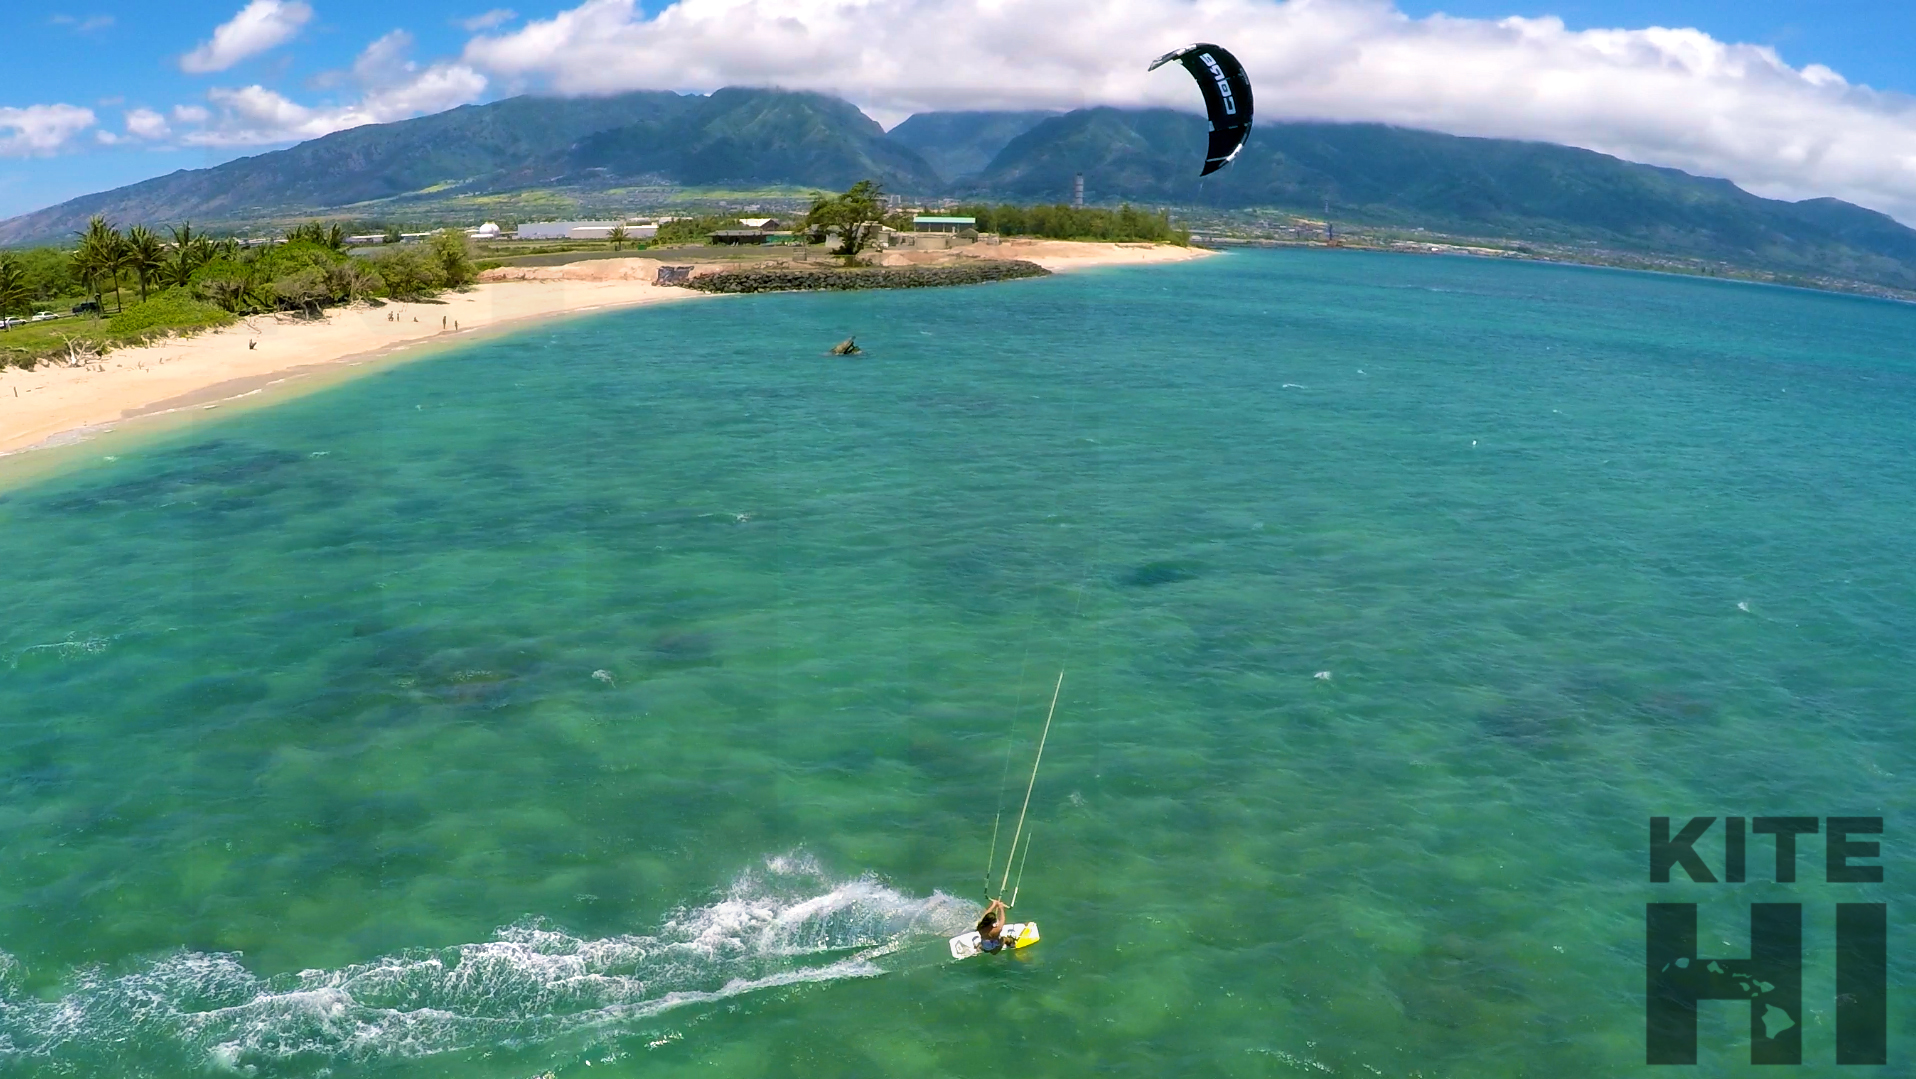 Raquel kiteboarding maui lower kite beach aerial.jpg